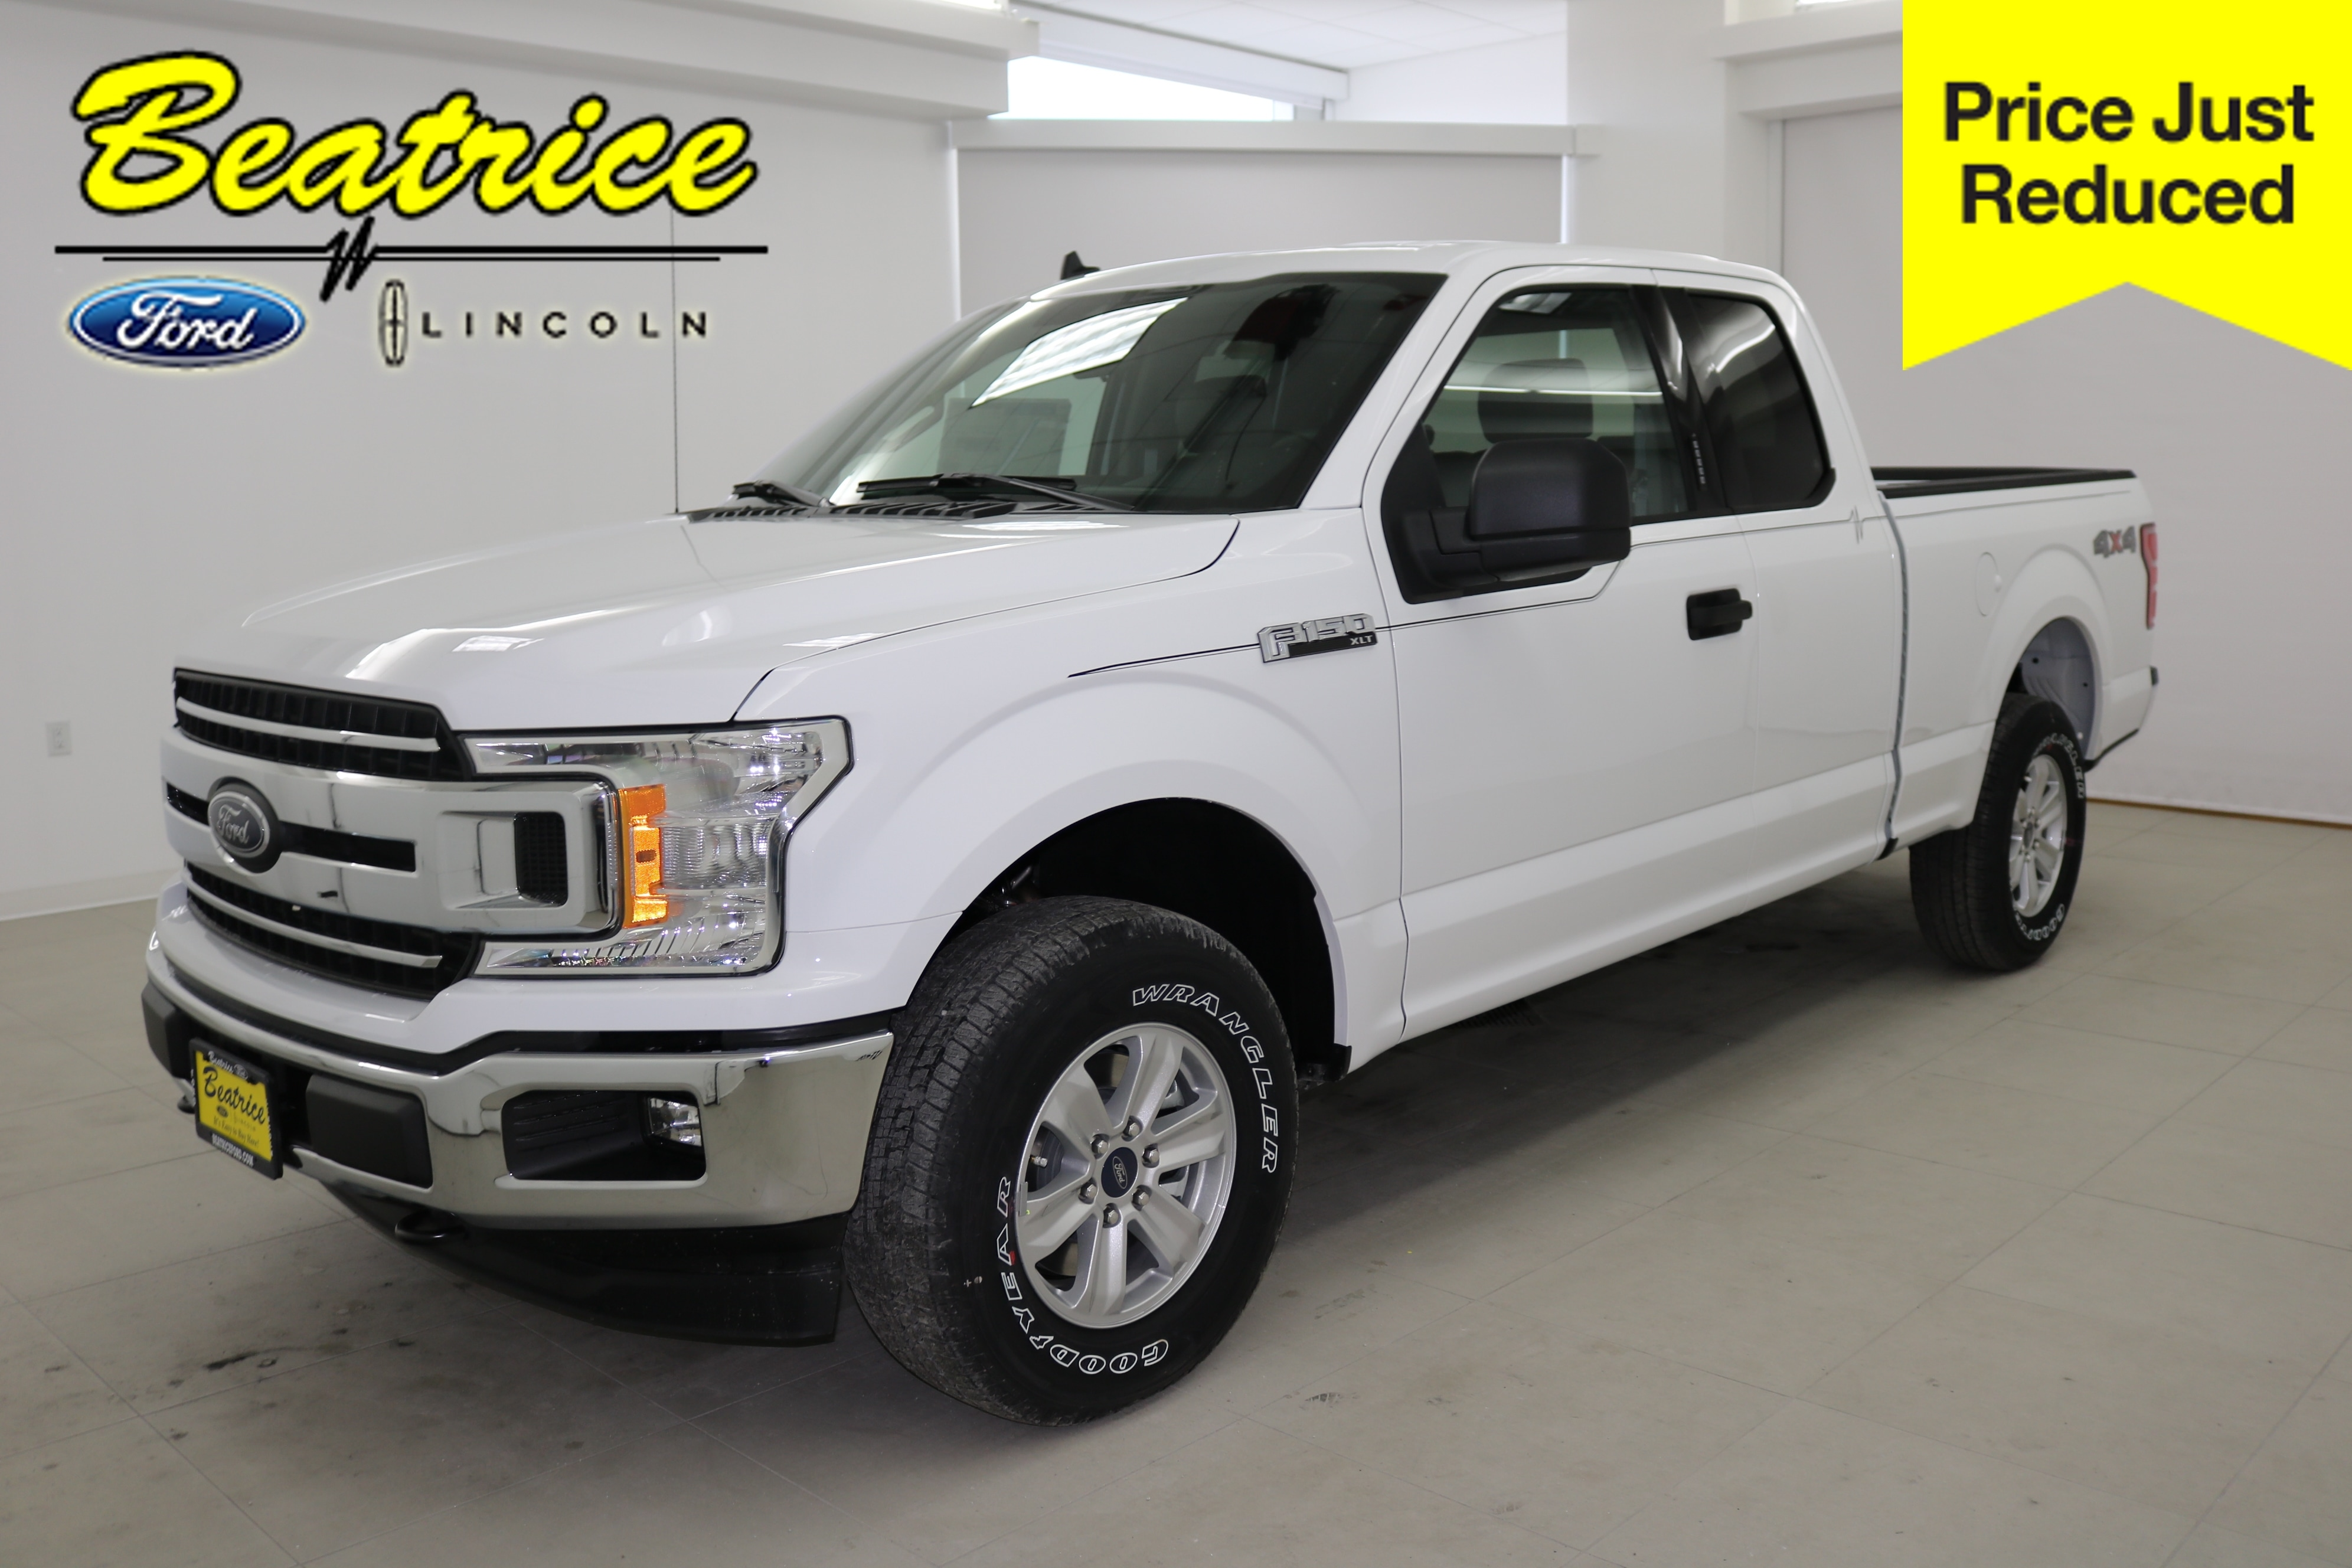 2019 Ford F-150 Extended Cab